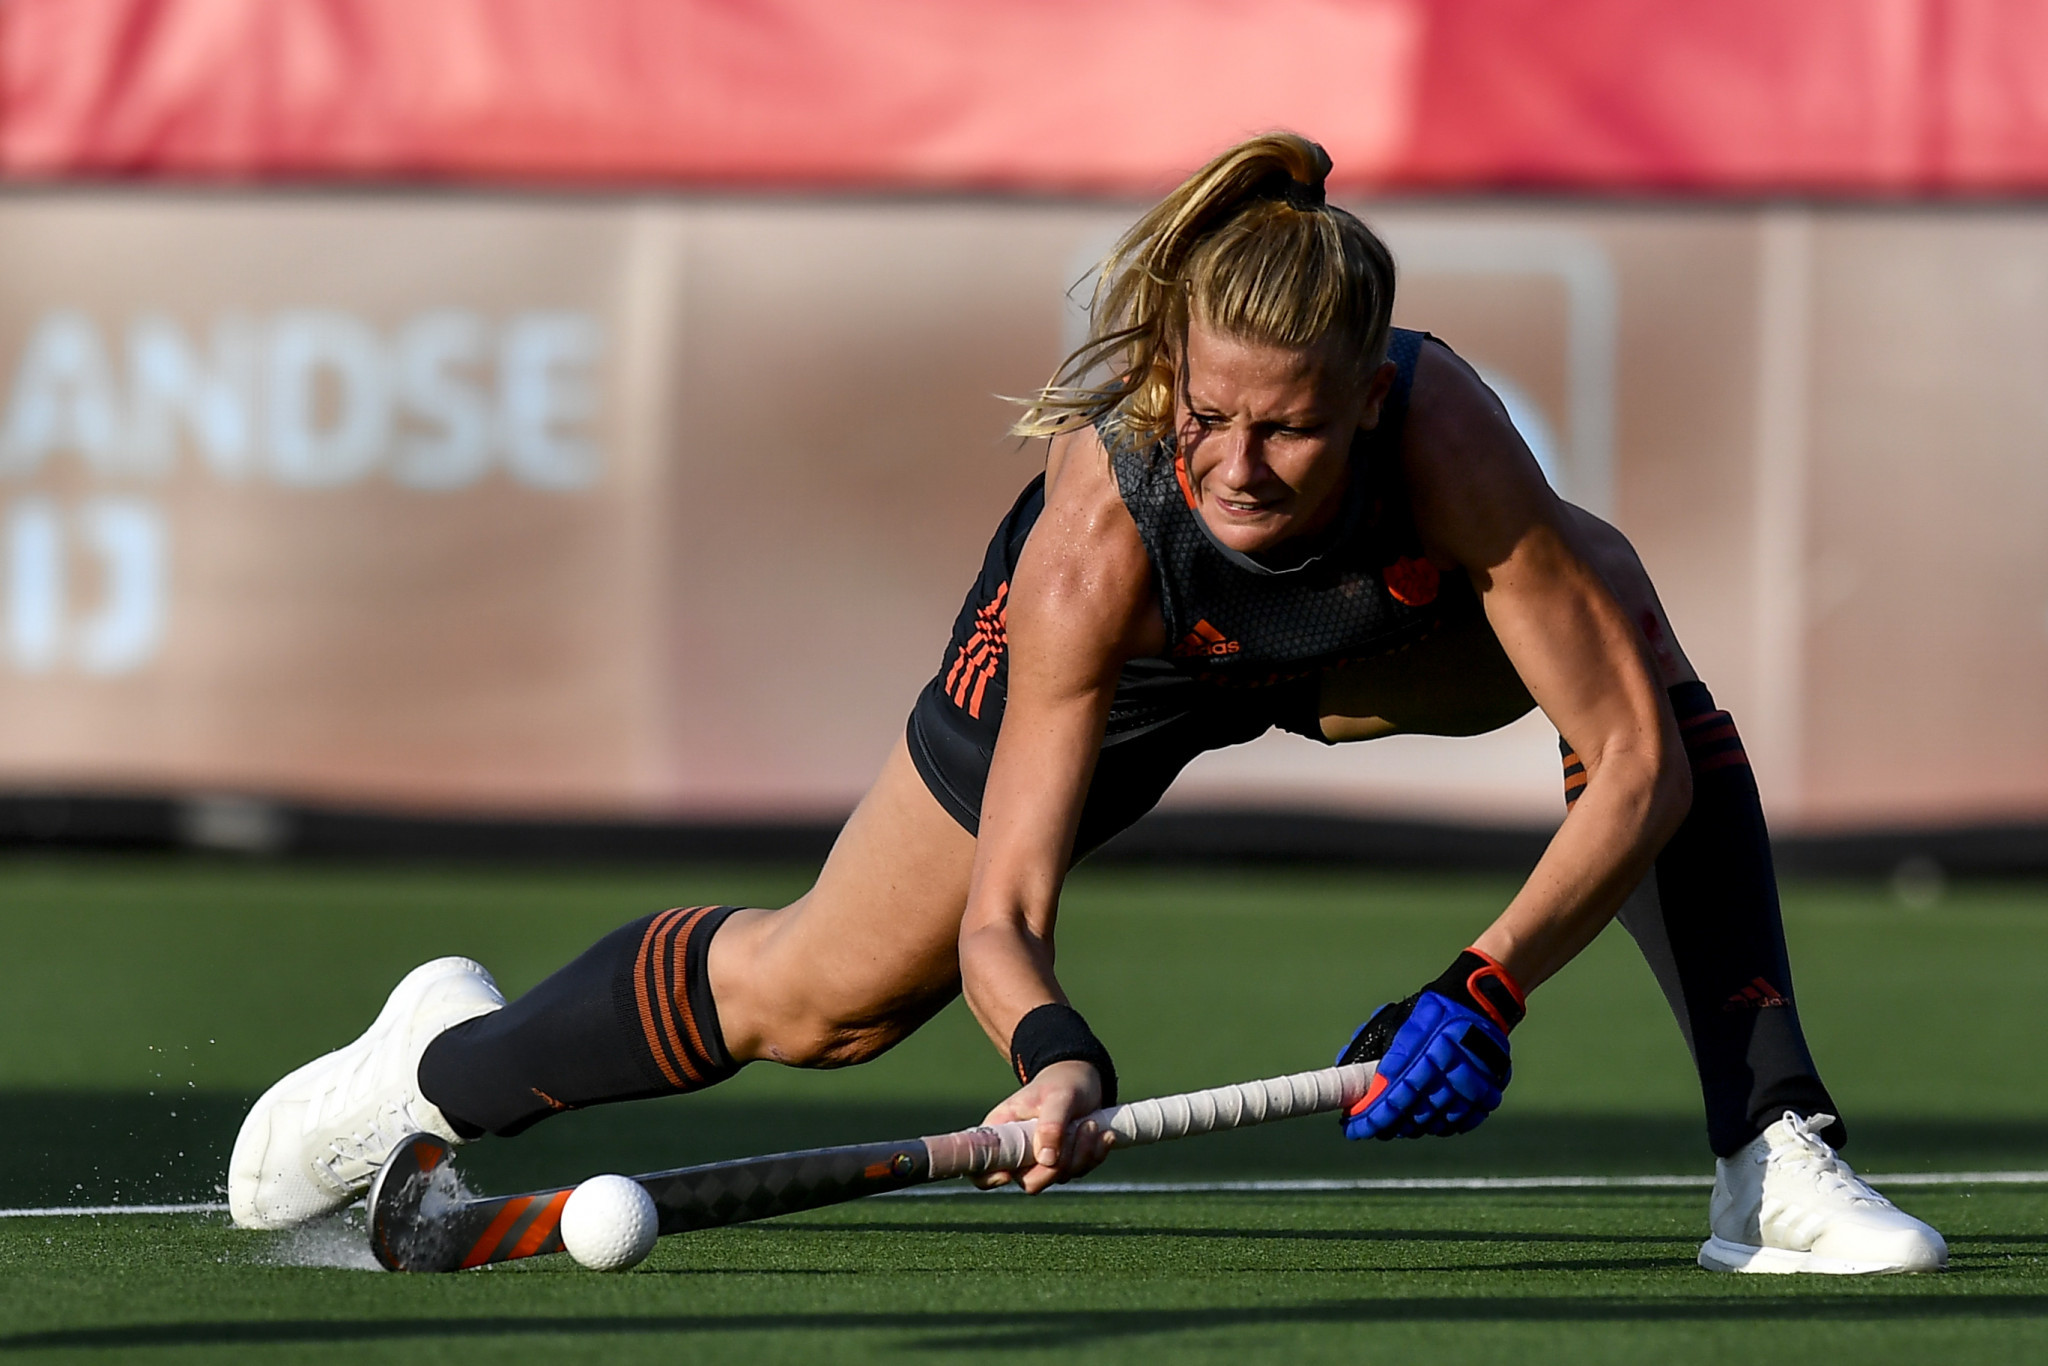 The Netherlands earned their third successive victory in the women's FIH Pro League ©Getty Images